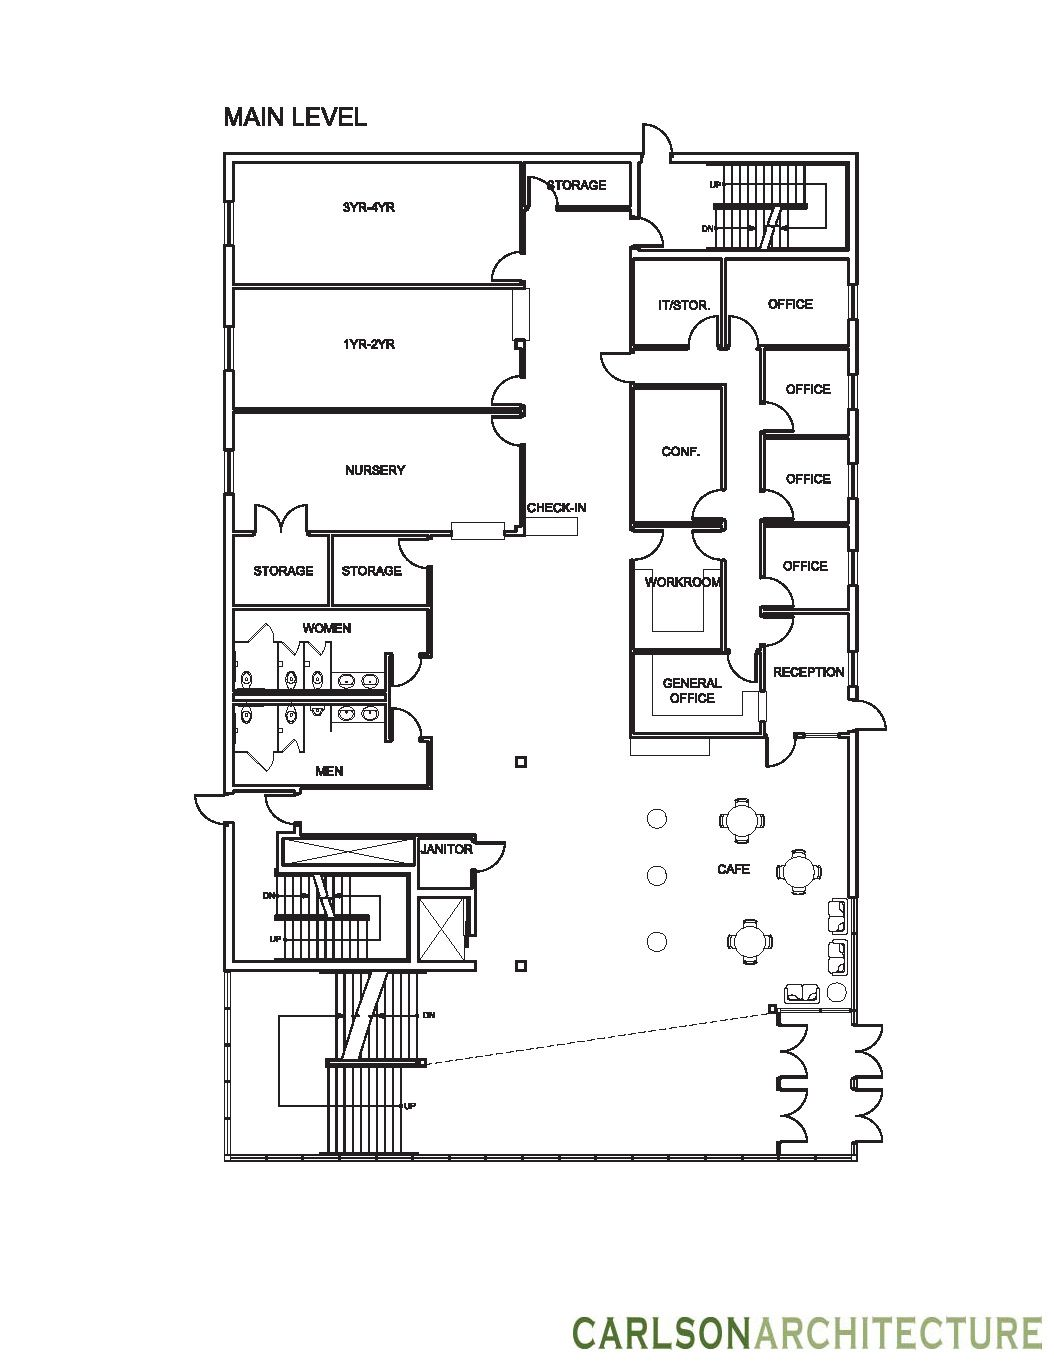 Church Building Plan With Lobby Church Offices And Christian Education Space Church Architect Church Building Plans Office Floor Plan